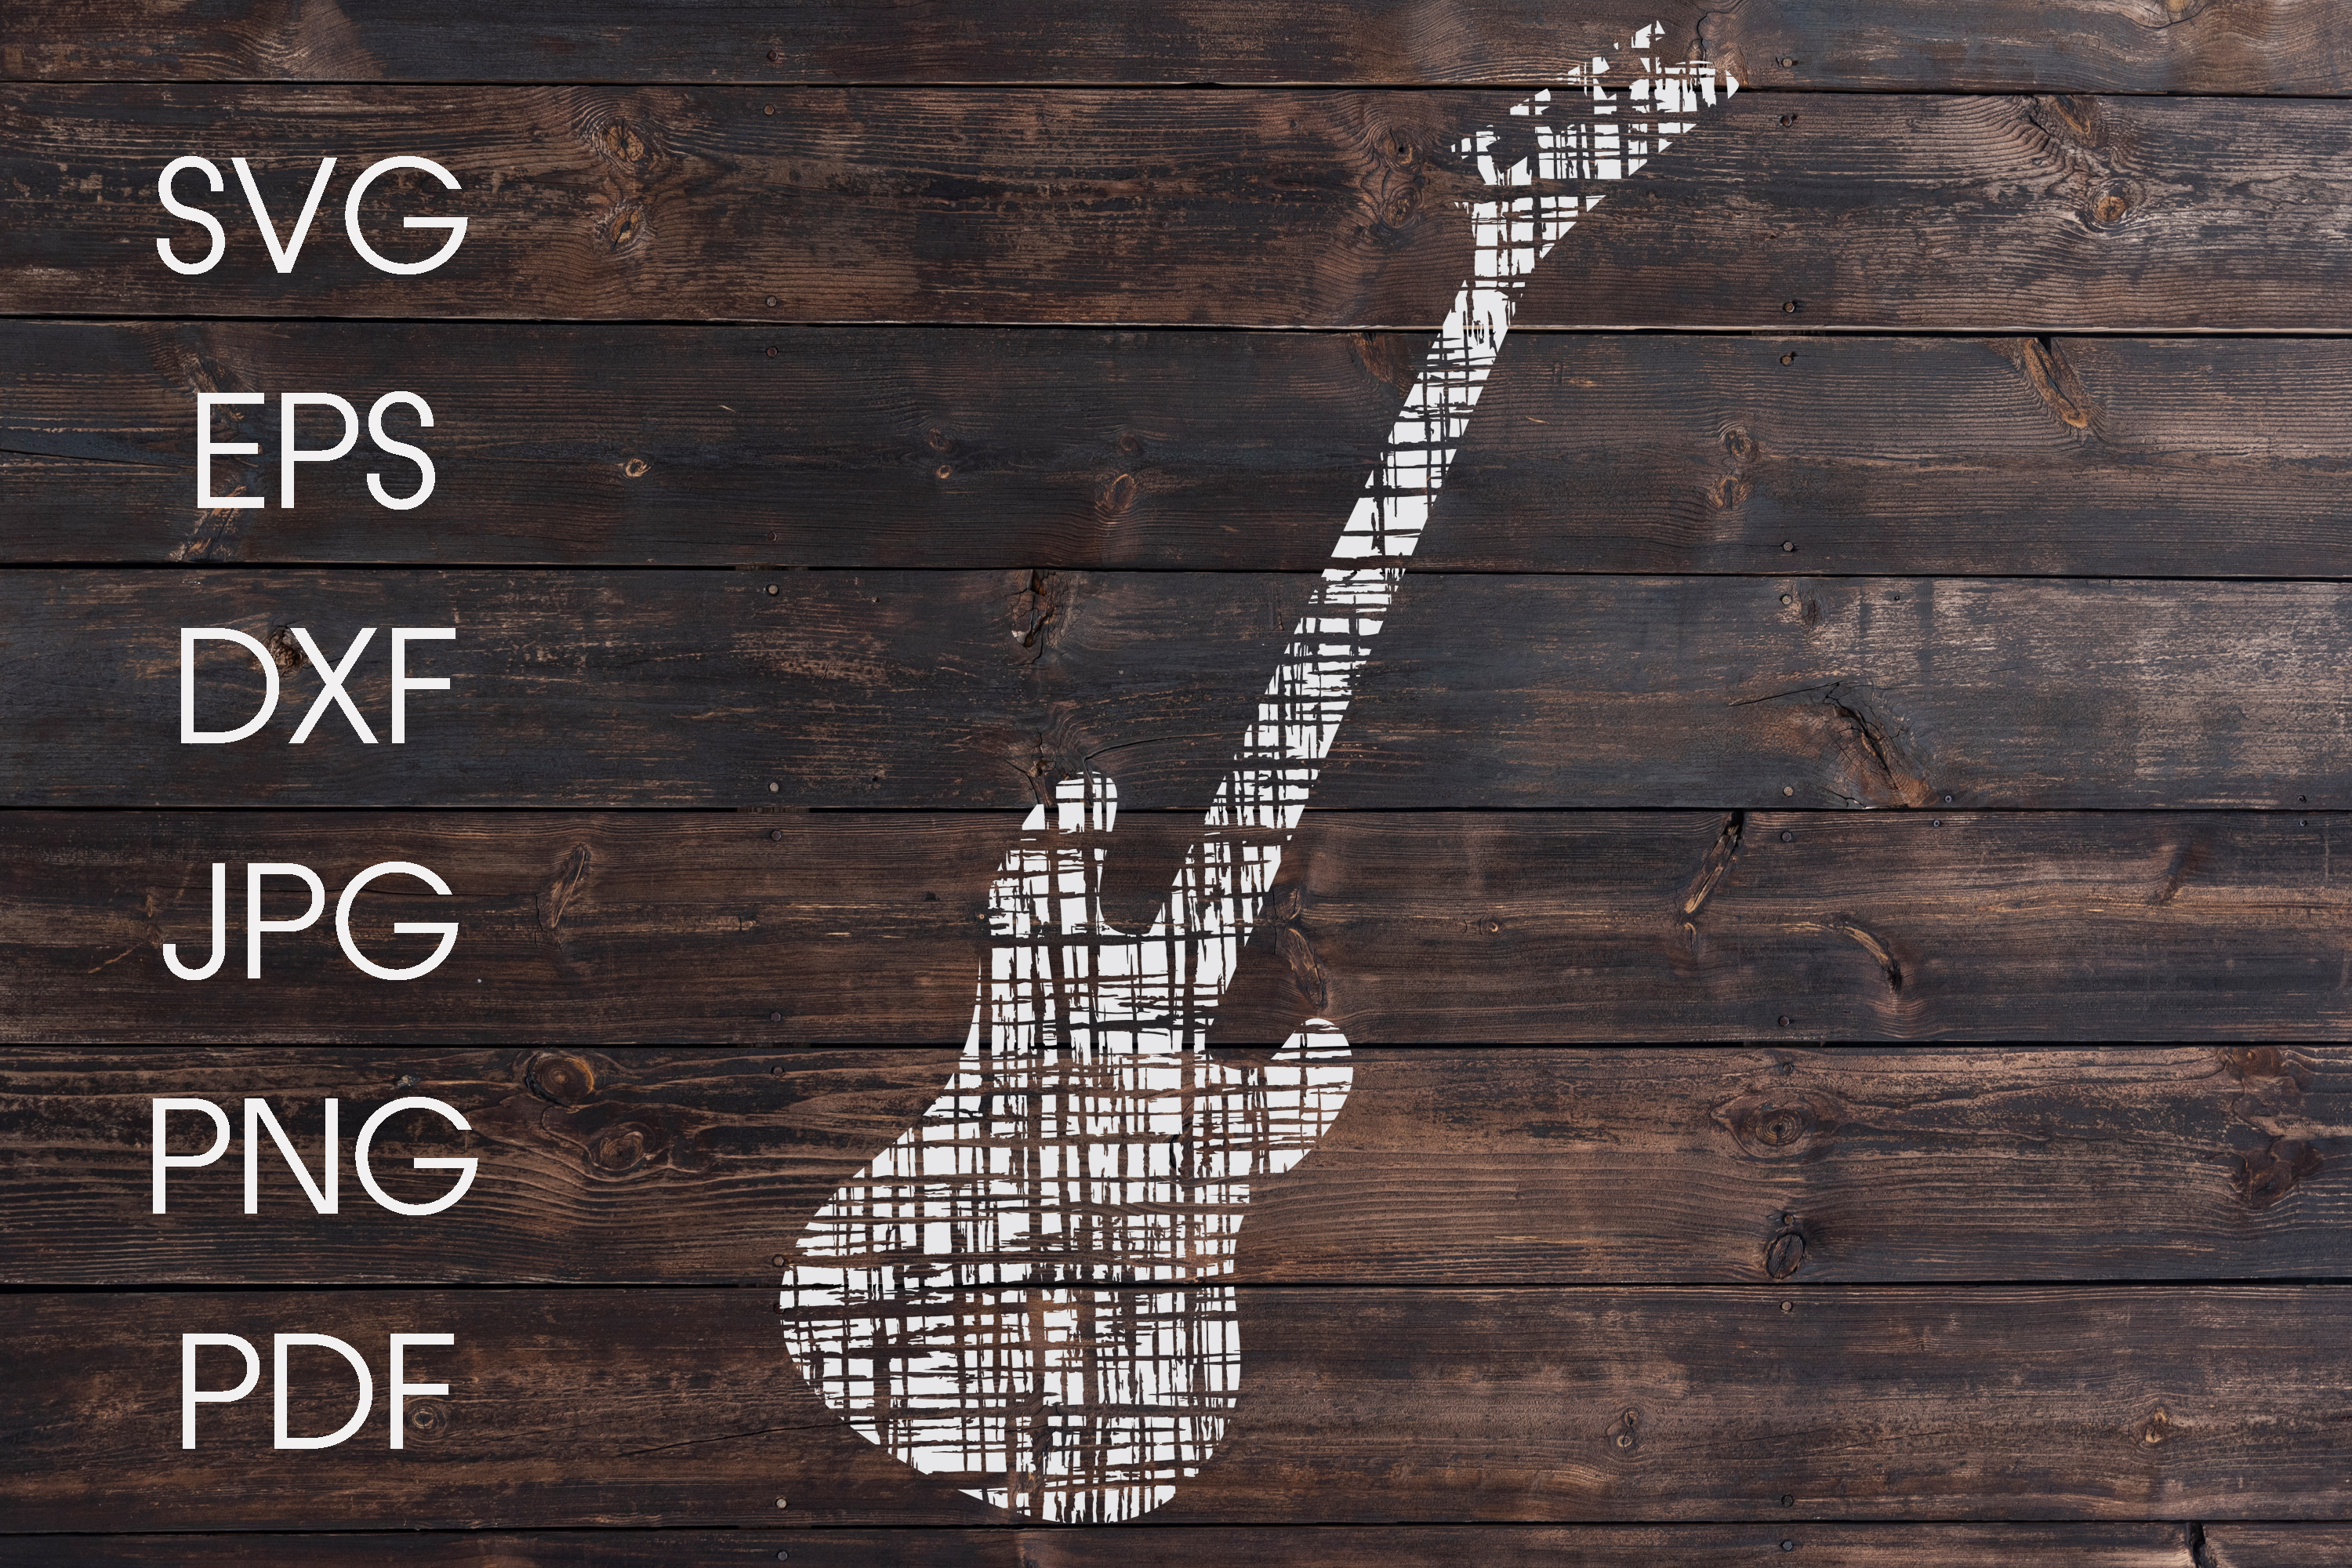 Guitar SVG | Distressed guitar SVG example image 1